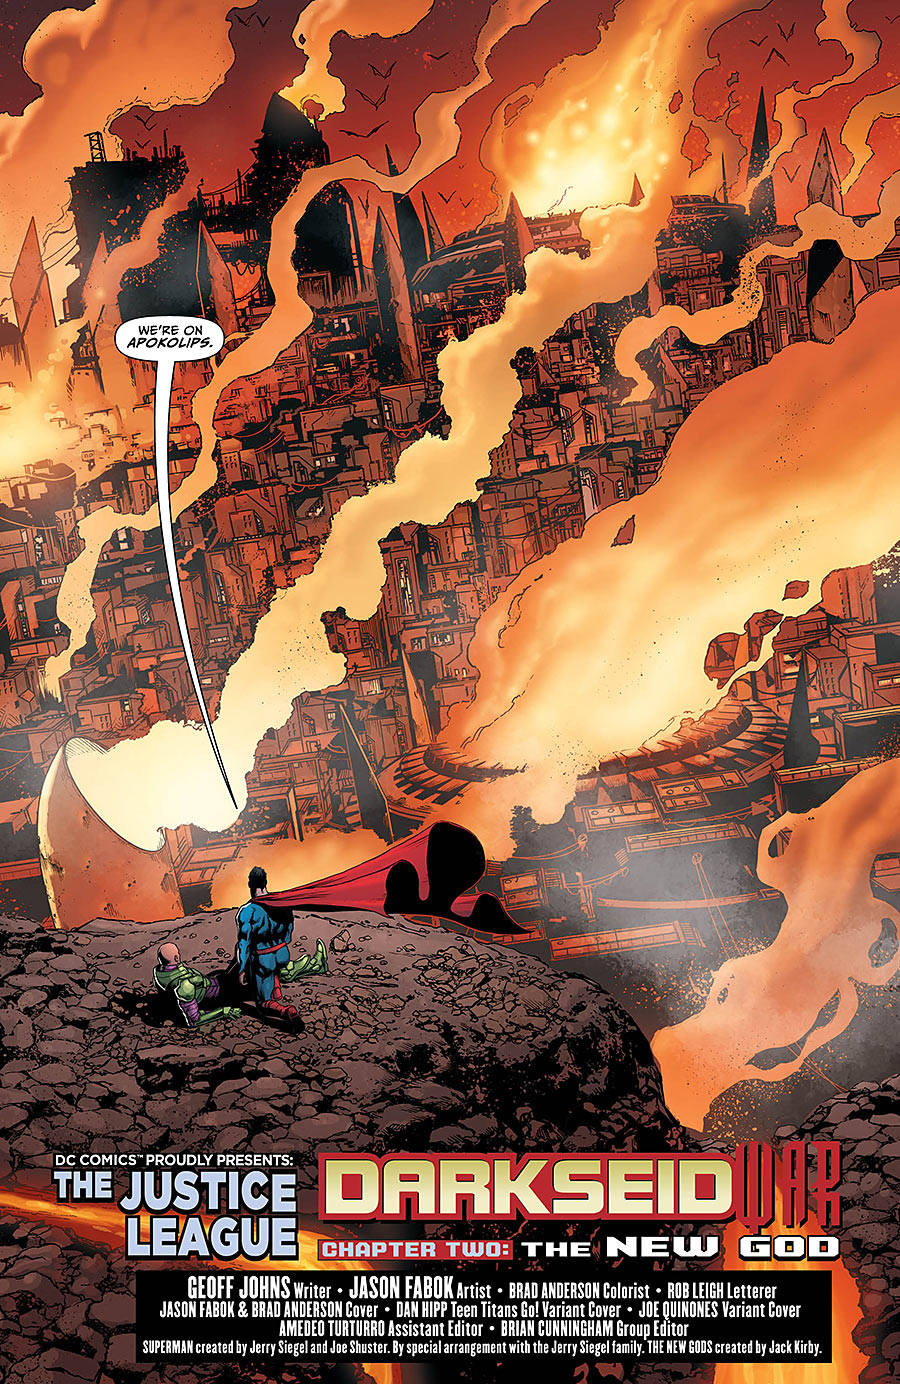 ... Justice League #42 Darkseid War 2 Spoilers Preview 4